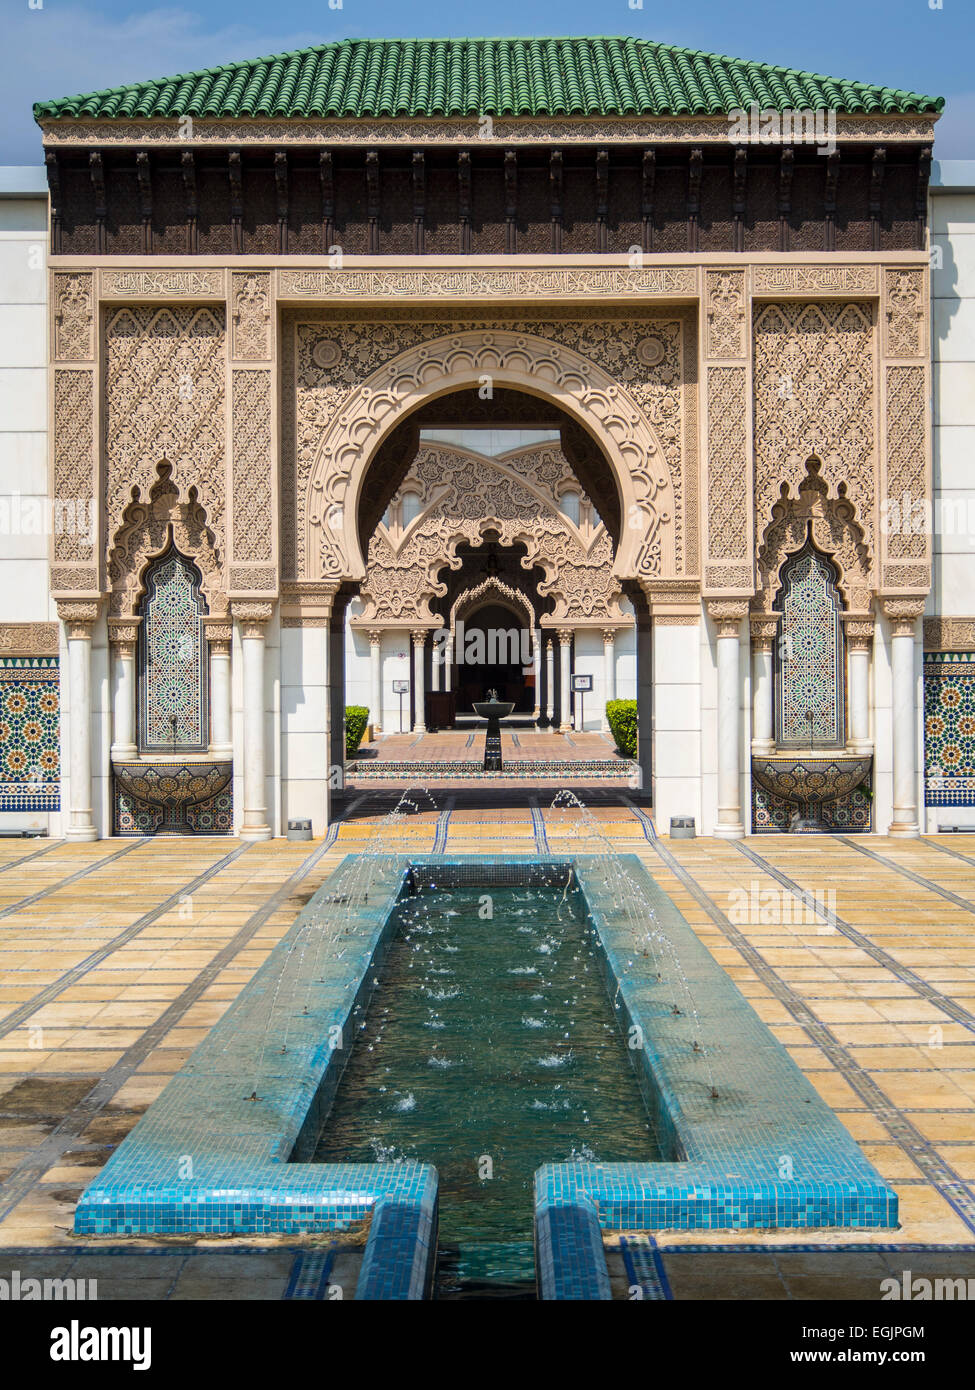 Inside The Moroccan Pavilion In Putrajaya Malaysia Stock